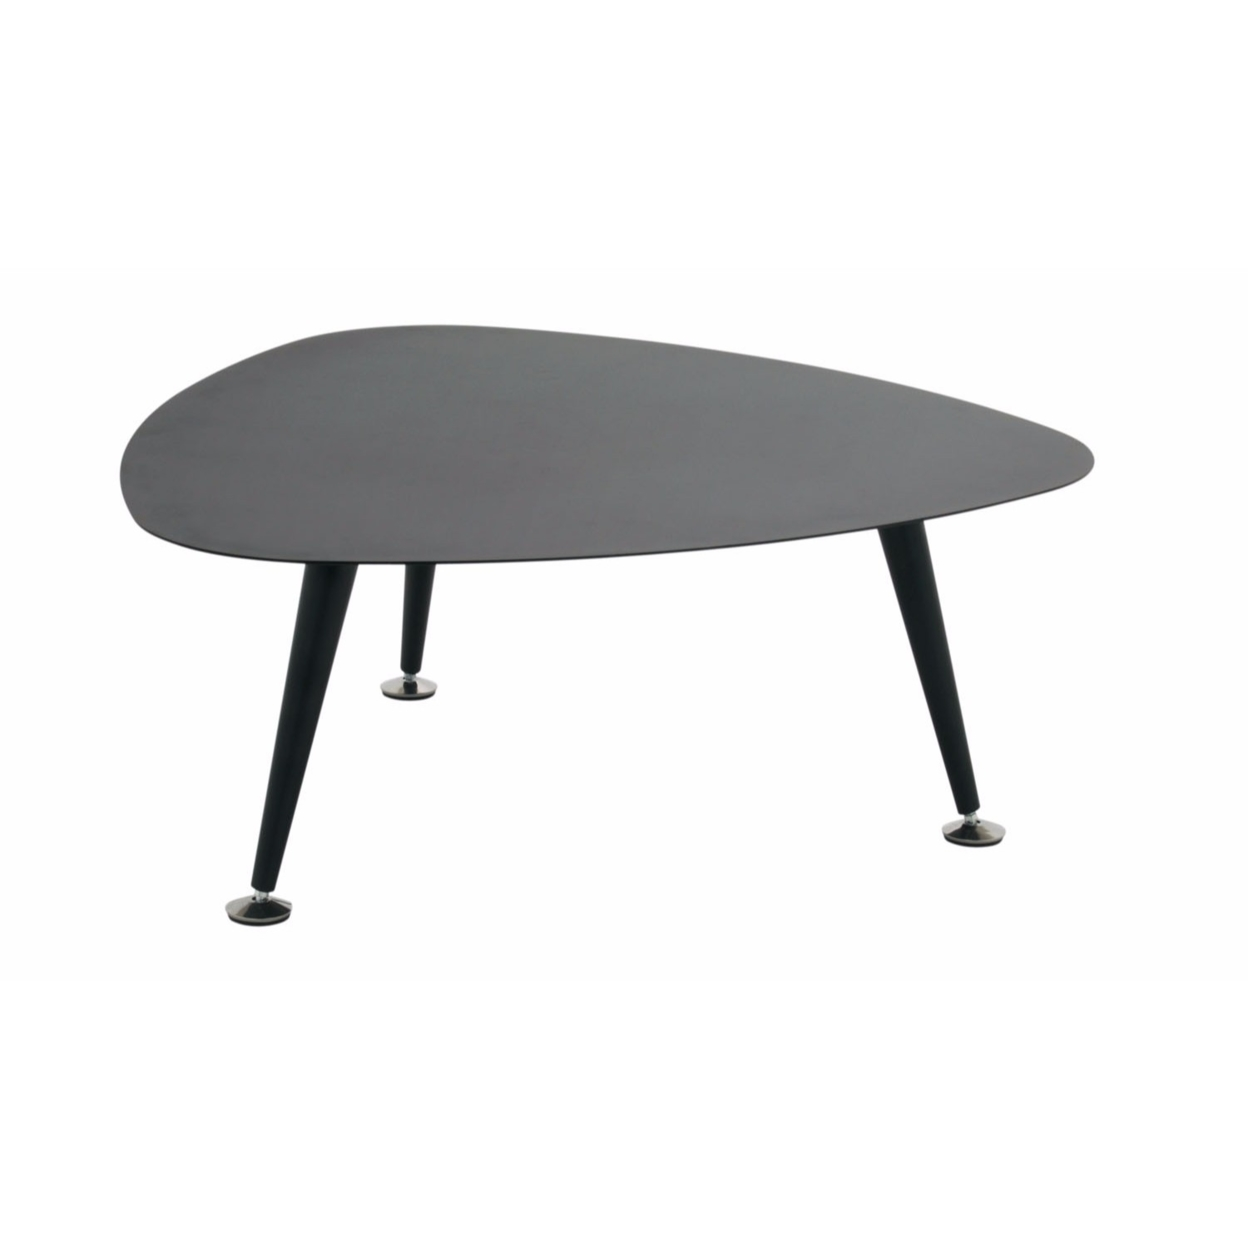 Offex Trilateral Accent Table 29, Black (1)